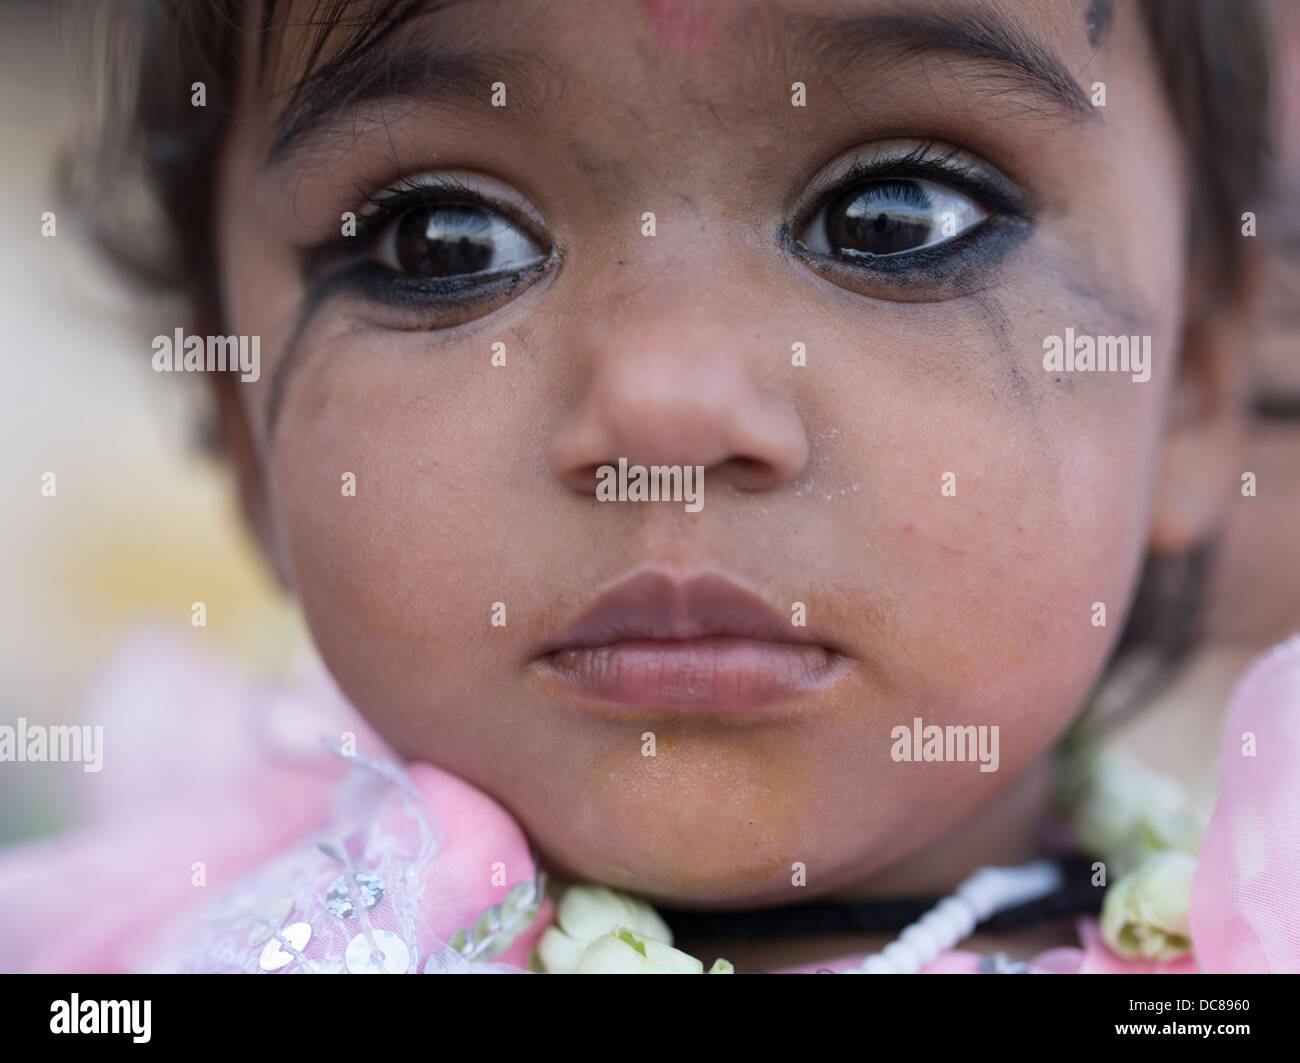 Young Indian girl wearing Heavy eyeliner possibly Kohl made from galena (lead sulphide /  sulfide) - Stock Image